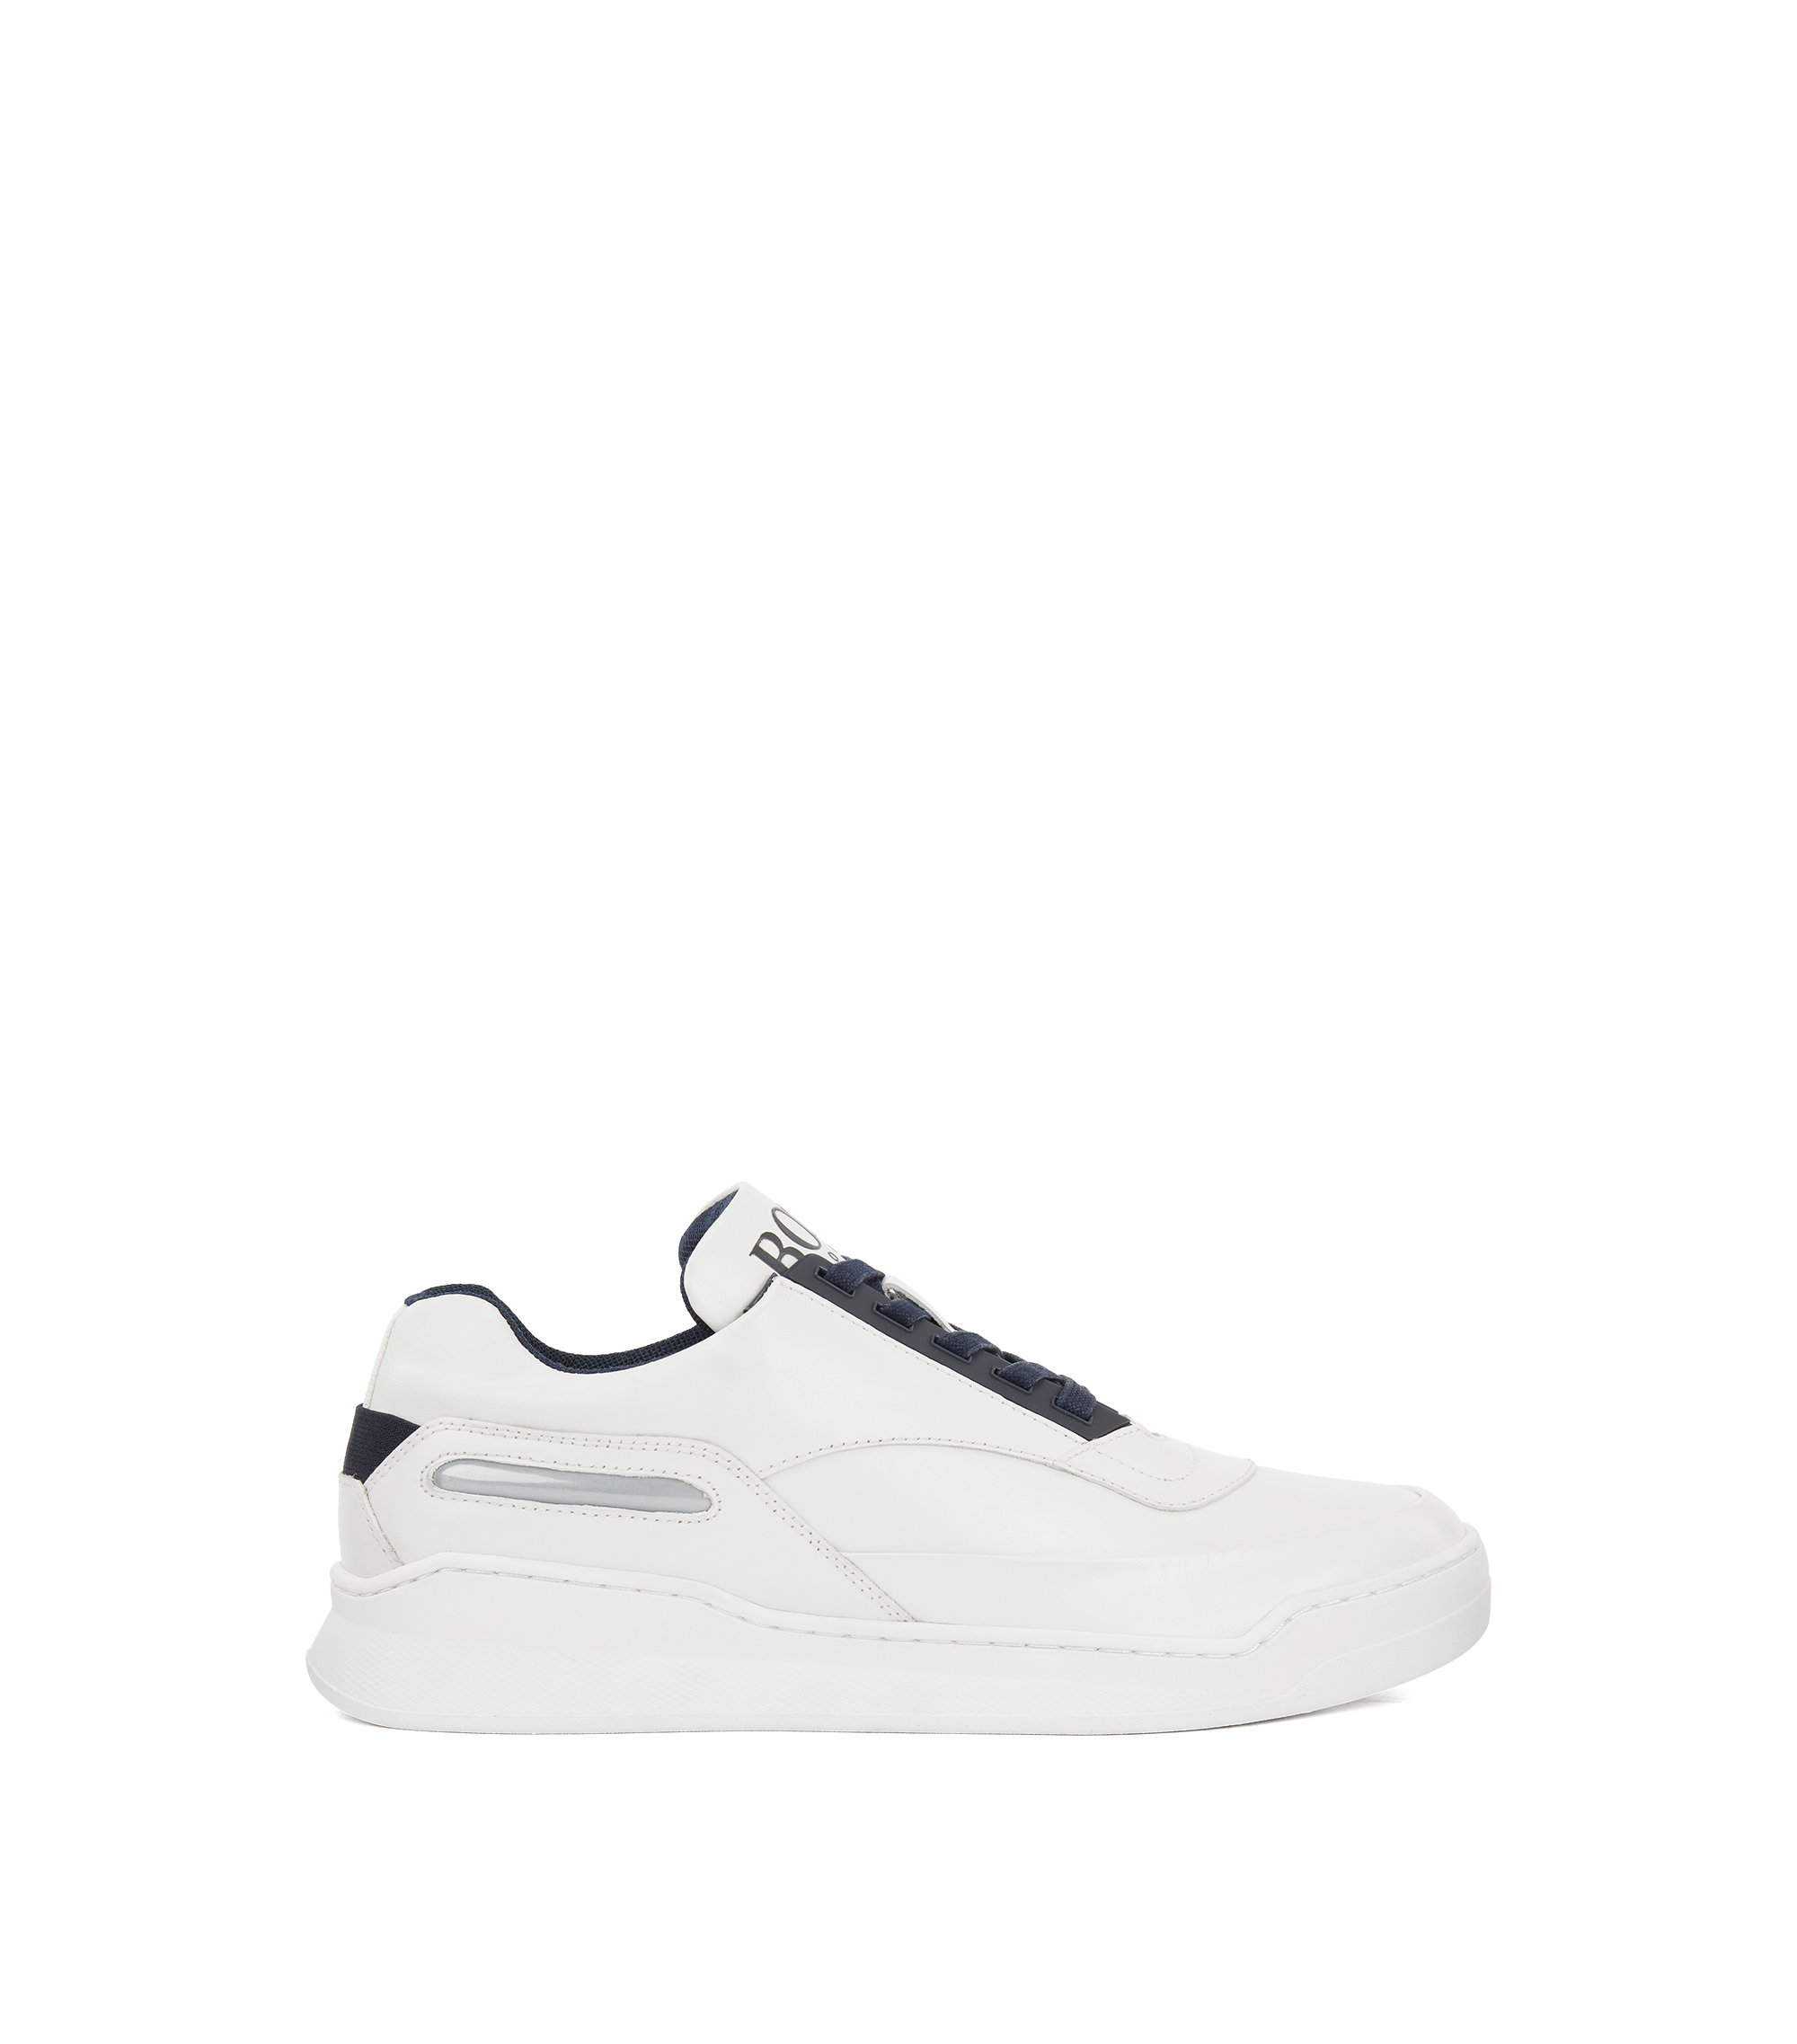 Leather trainers with reflective window and rubber sole, White